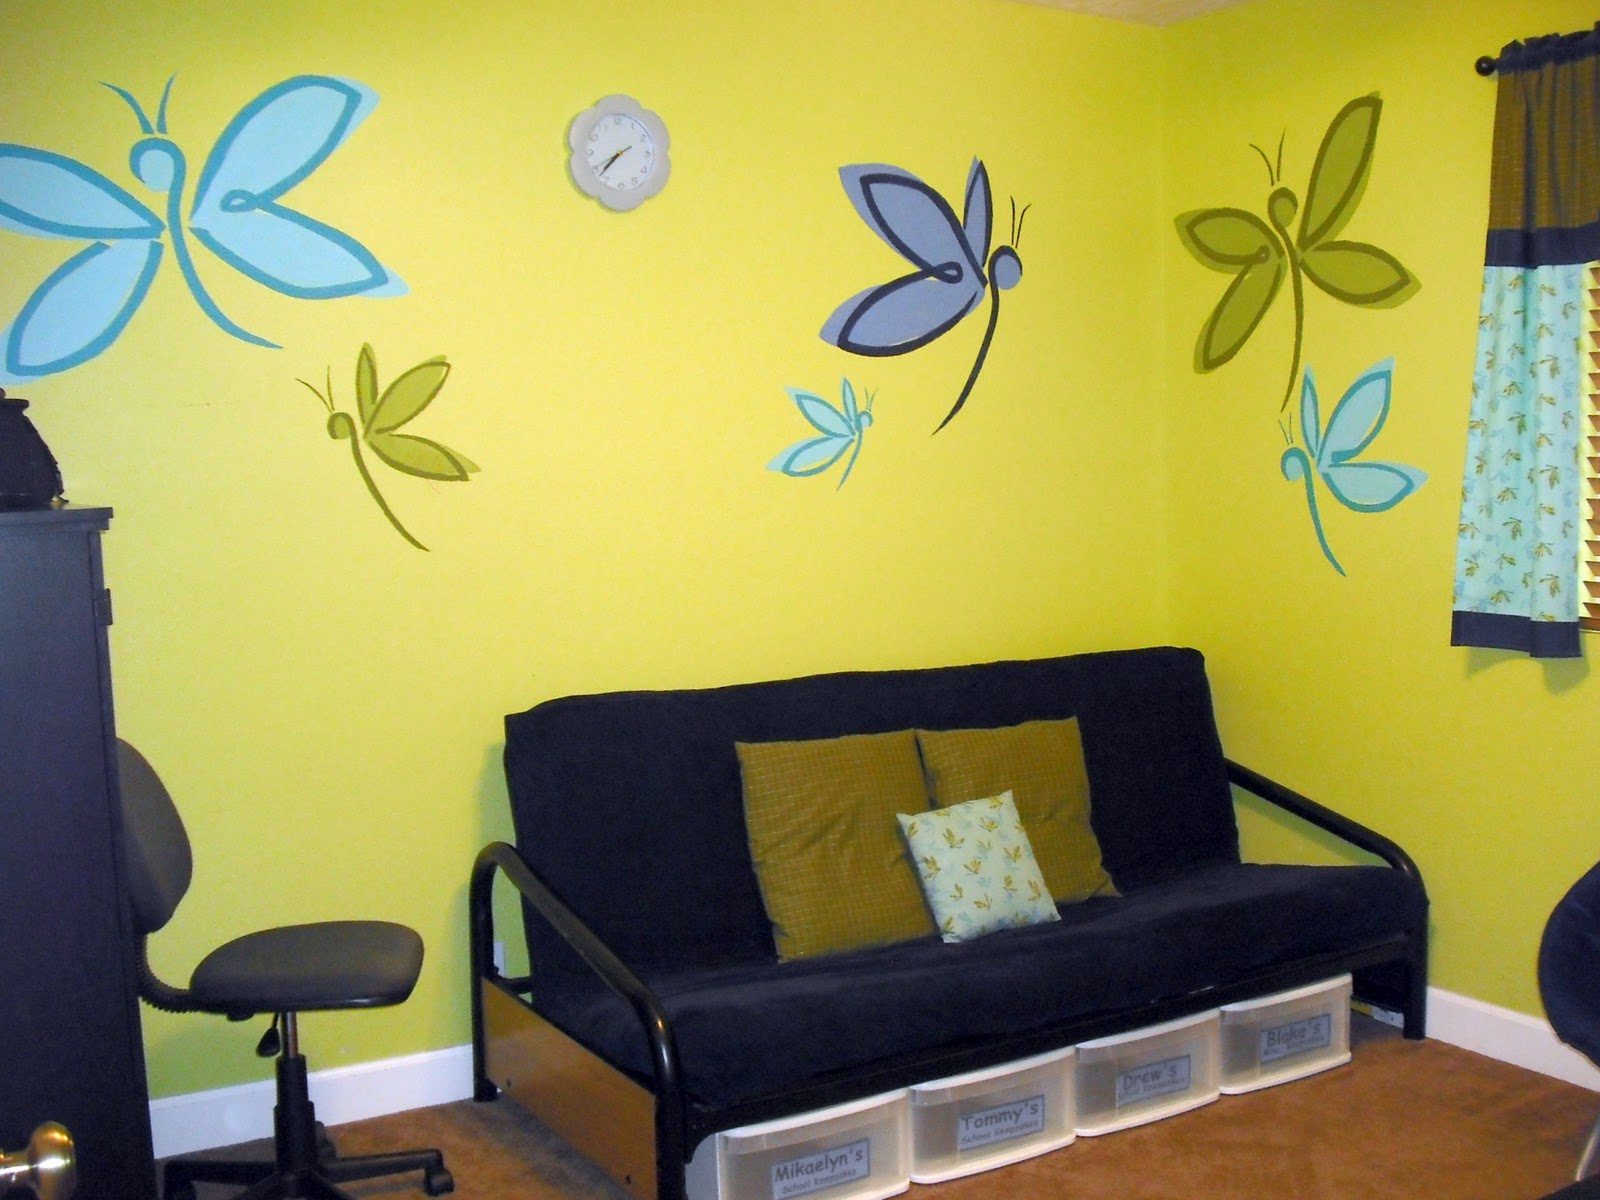 Awesome Easy Wall Mural Ideas Images - The Wall Art Decorations ...